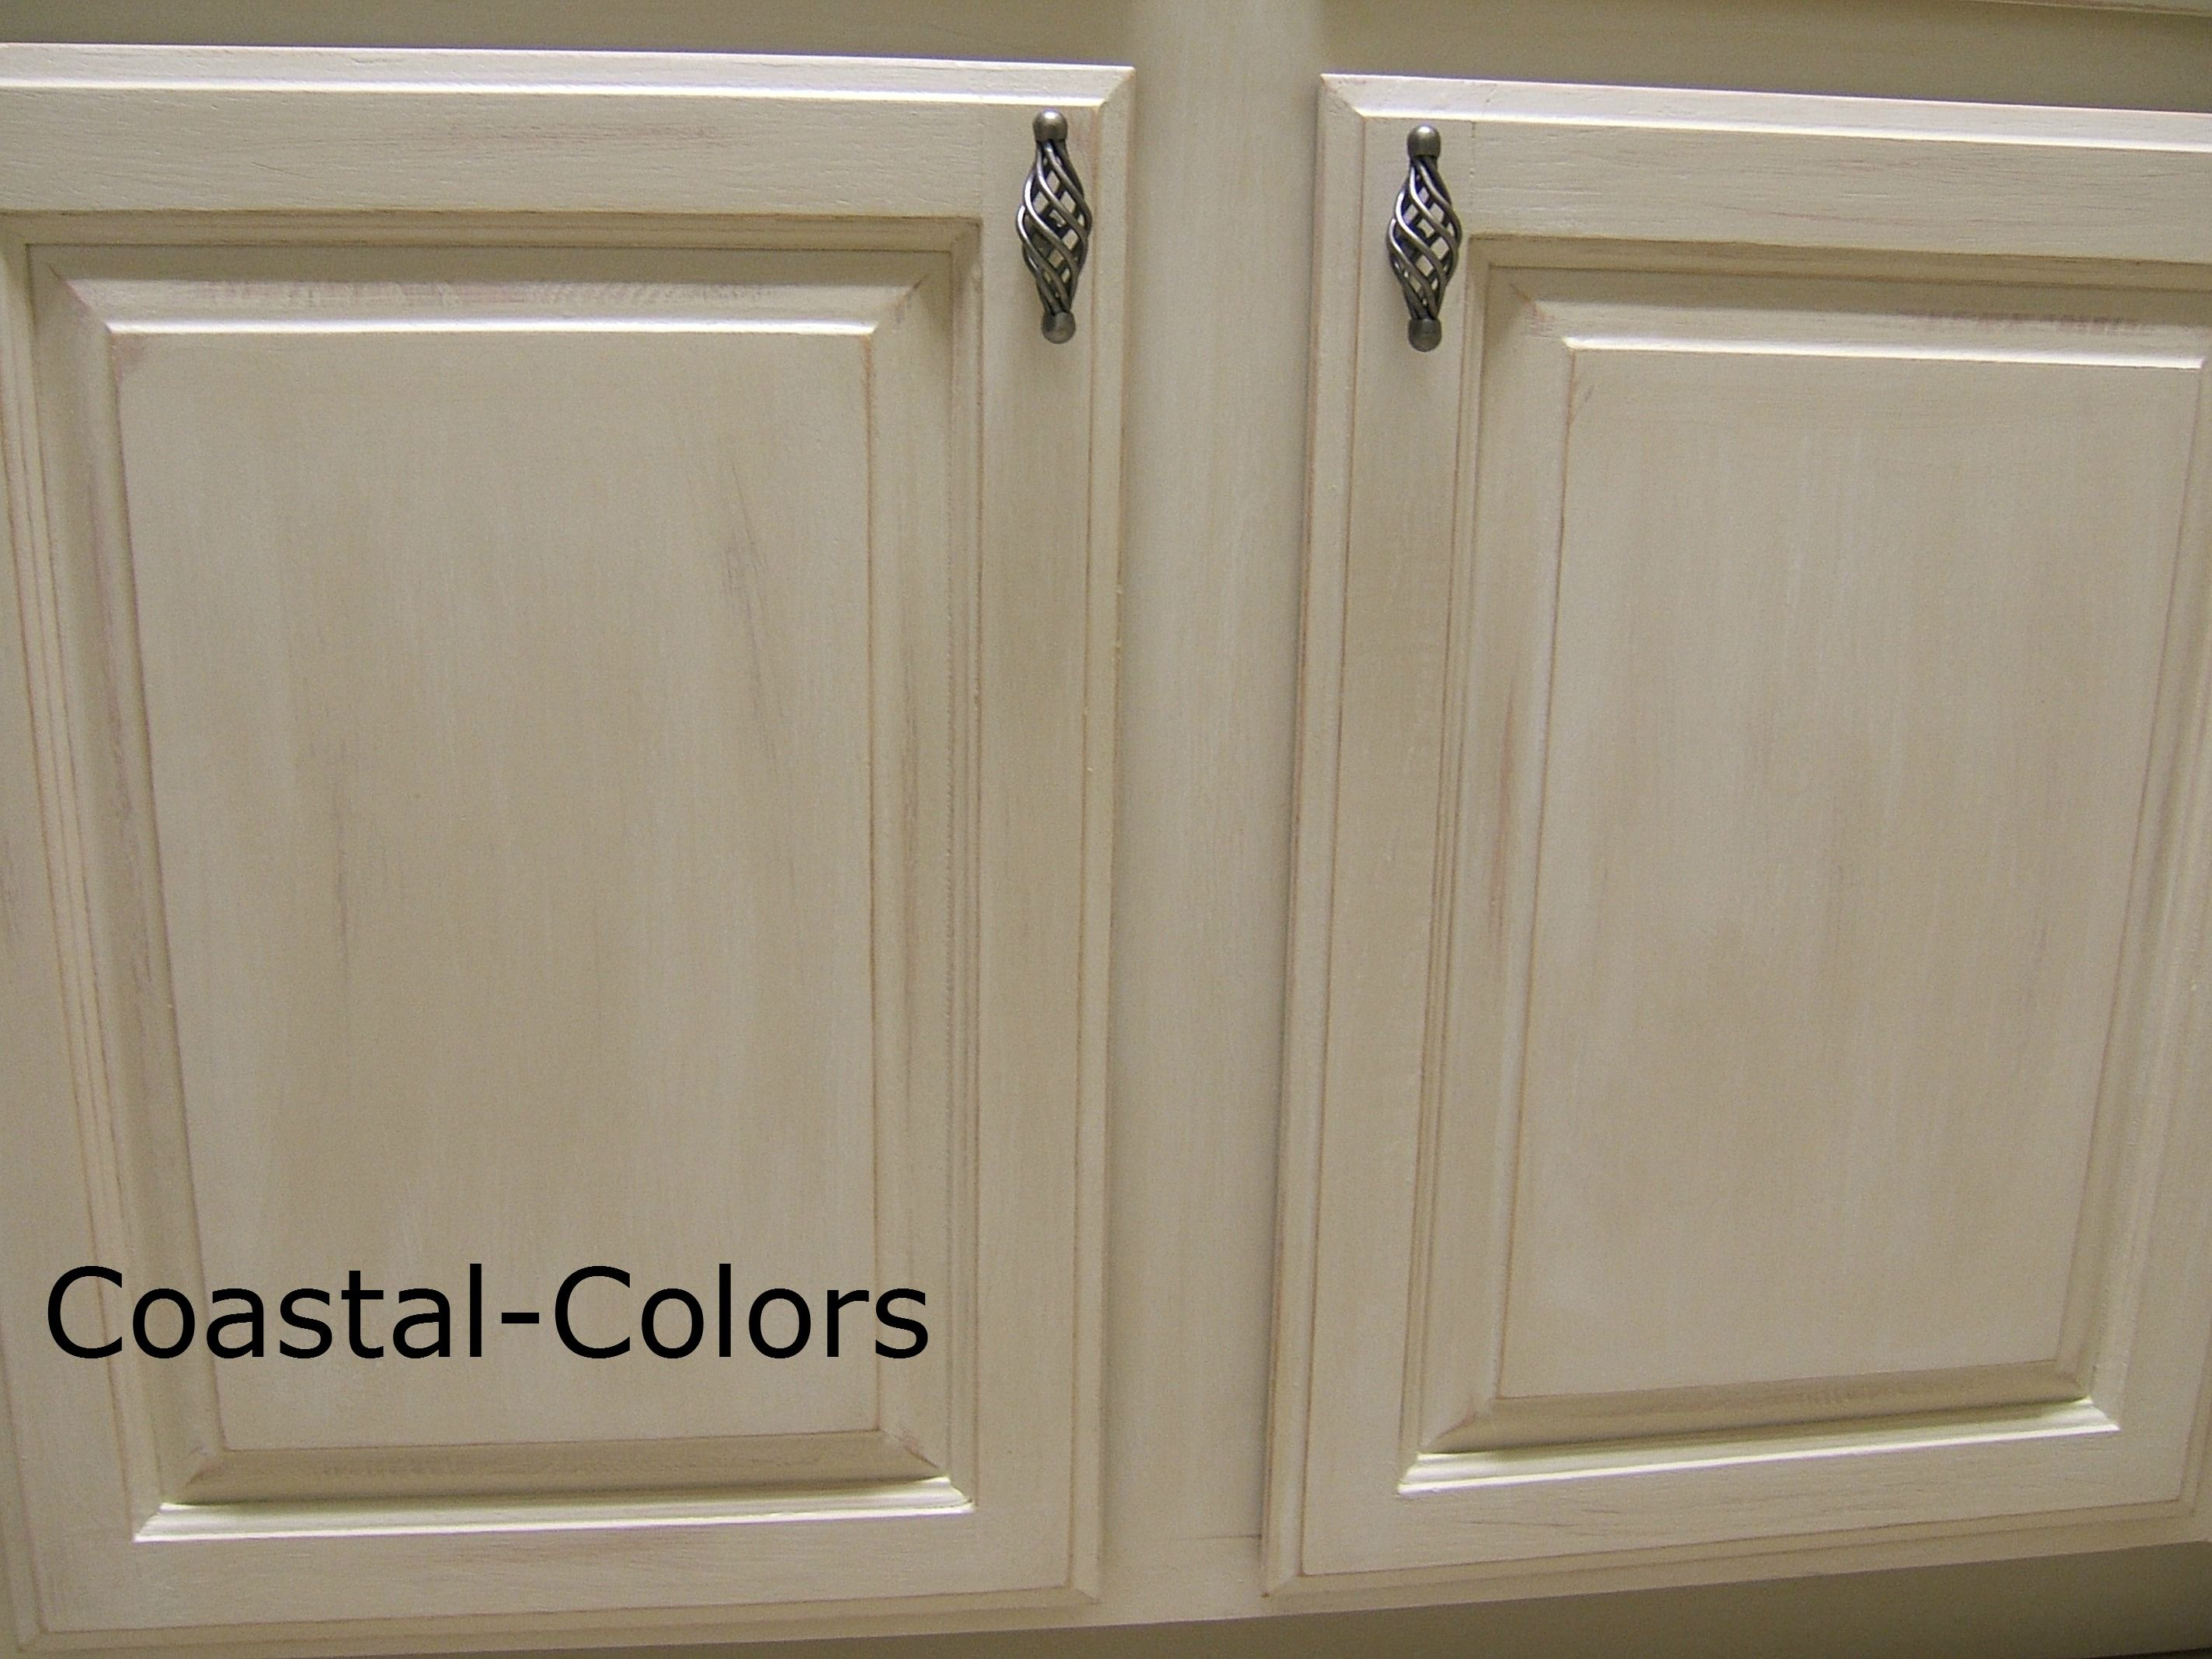 Annie sloan 39 s old ocre with a cece caldwell 39 s vintage for Caldwell kitchen cabinets